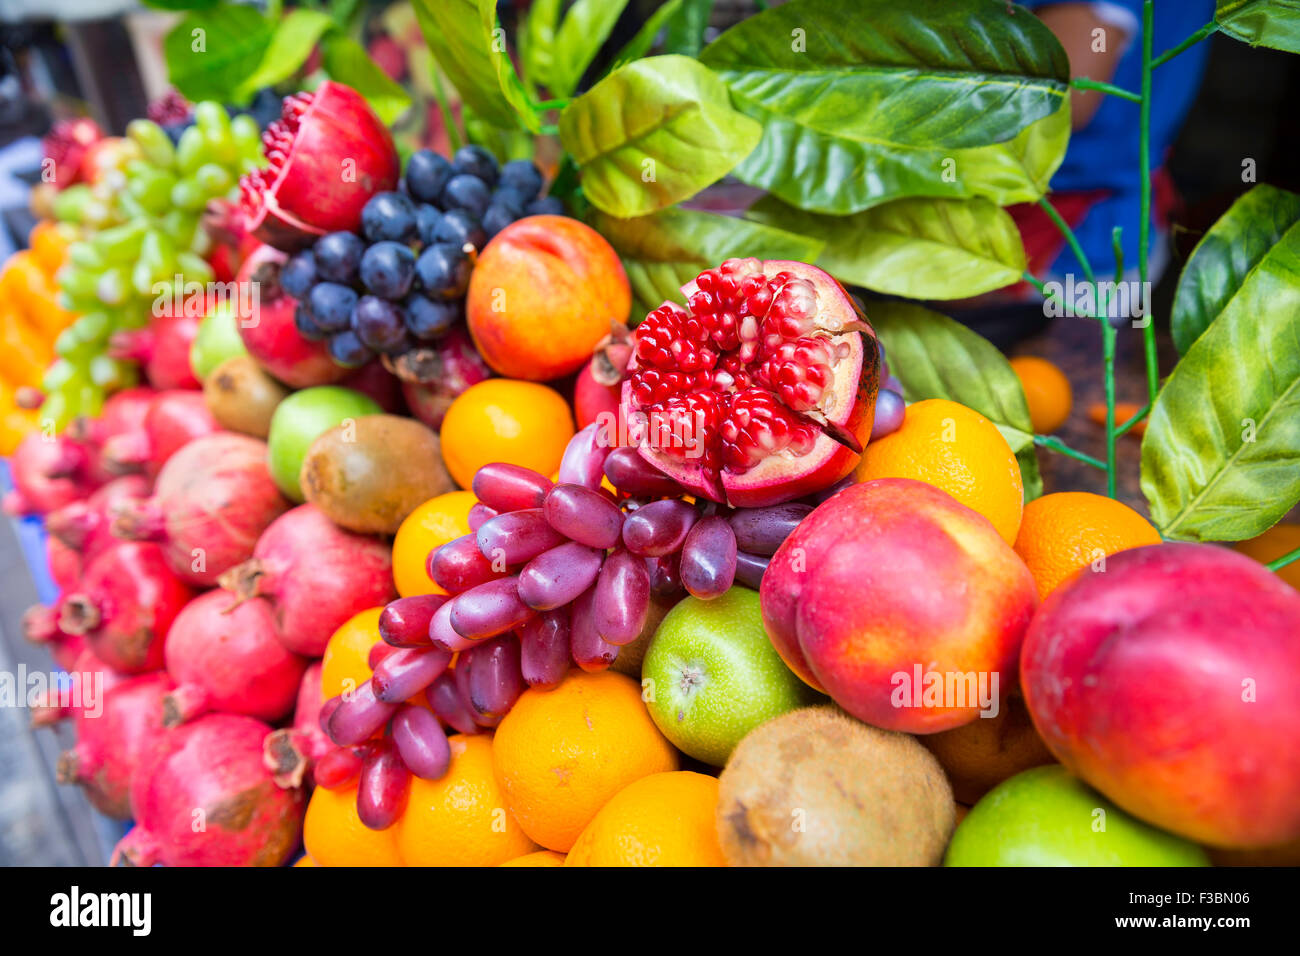 Many kind of different fruits on a showcase - Stock Image